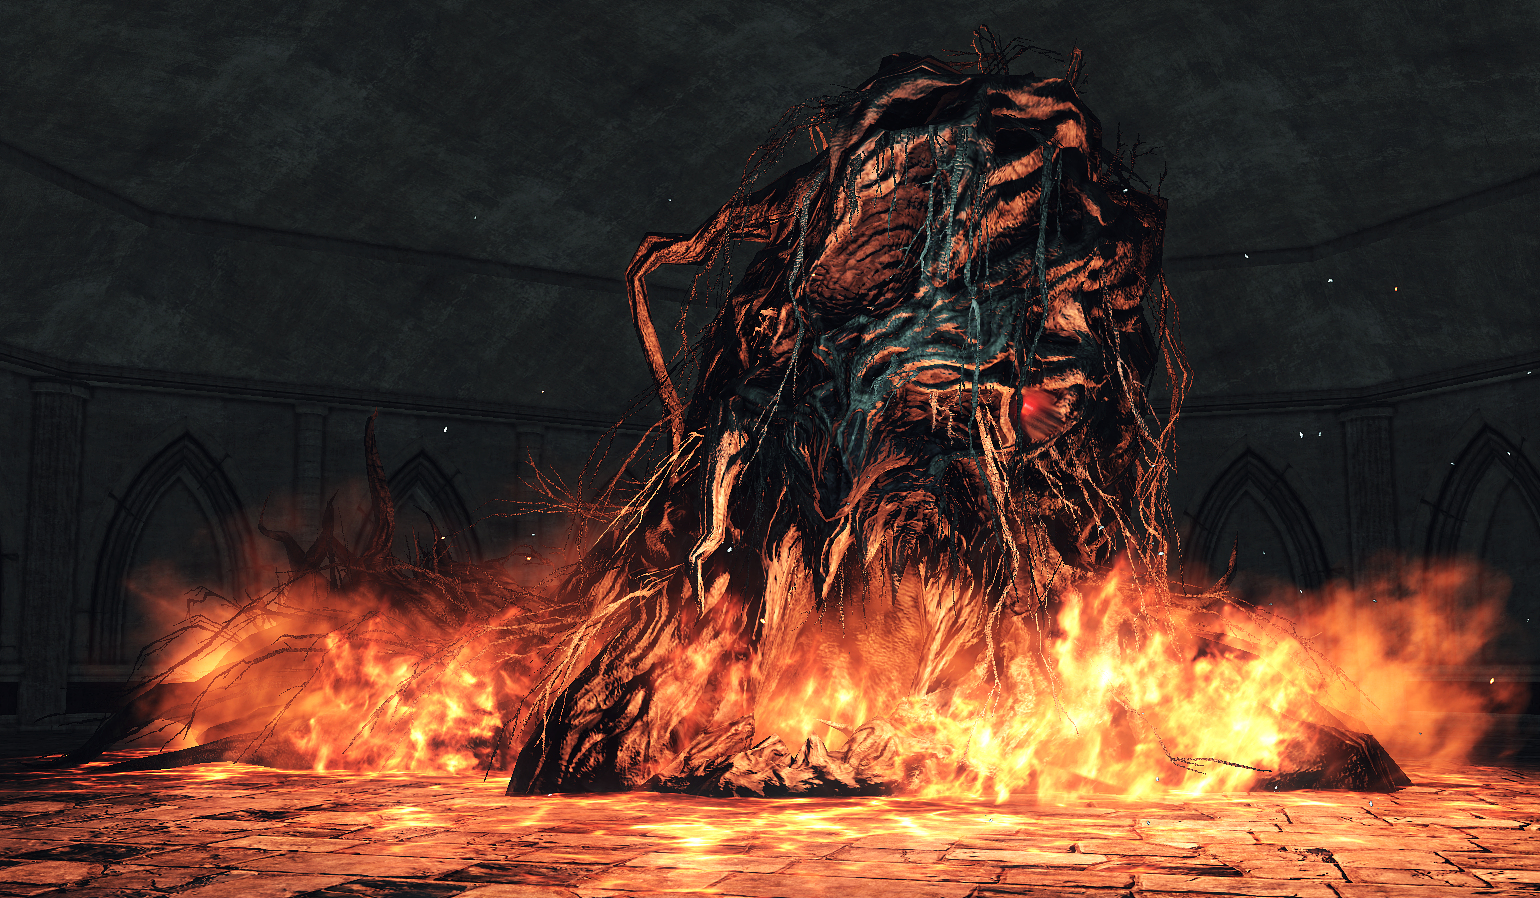 Dark Souls 2 Wiki: Aldia, Scholar Of The First Sin